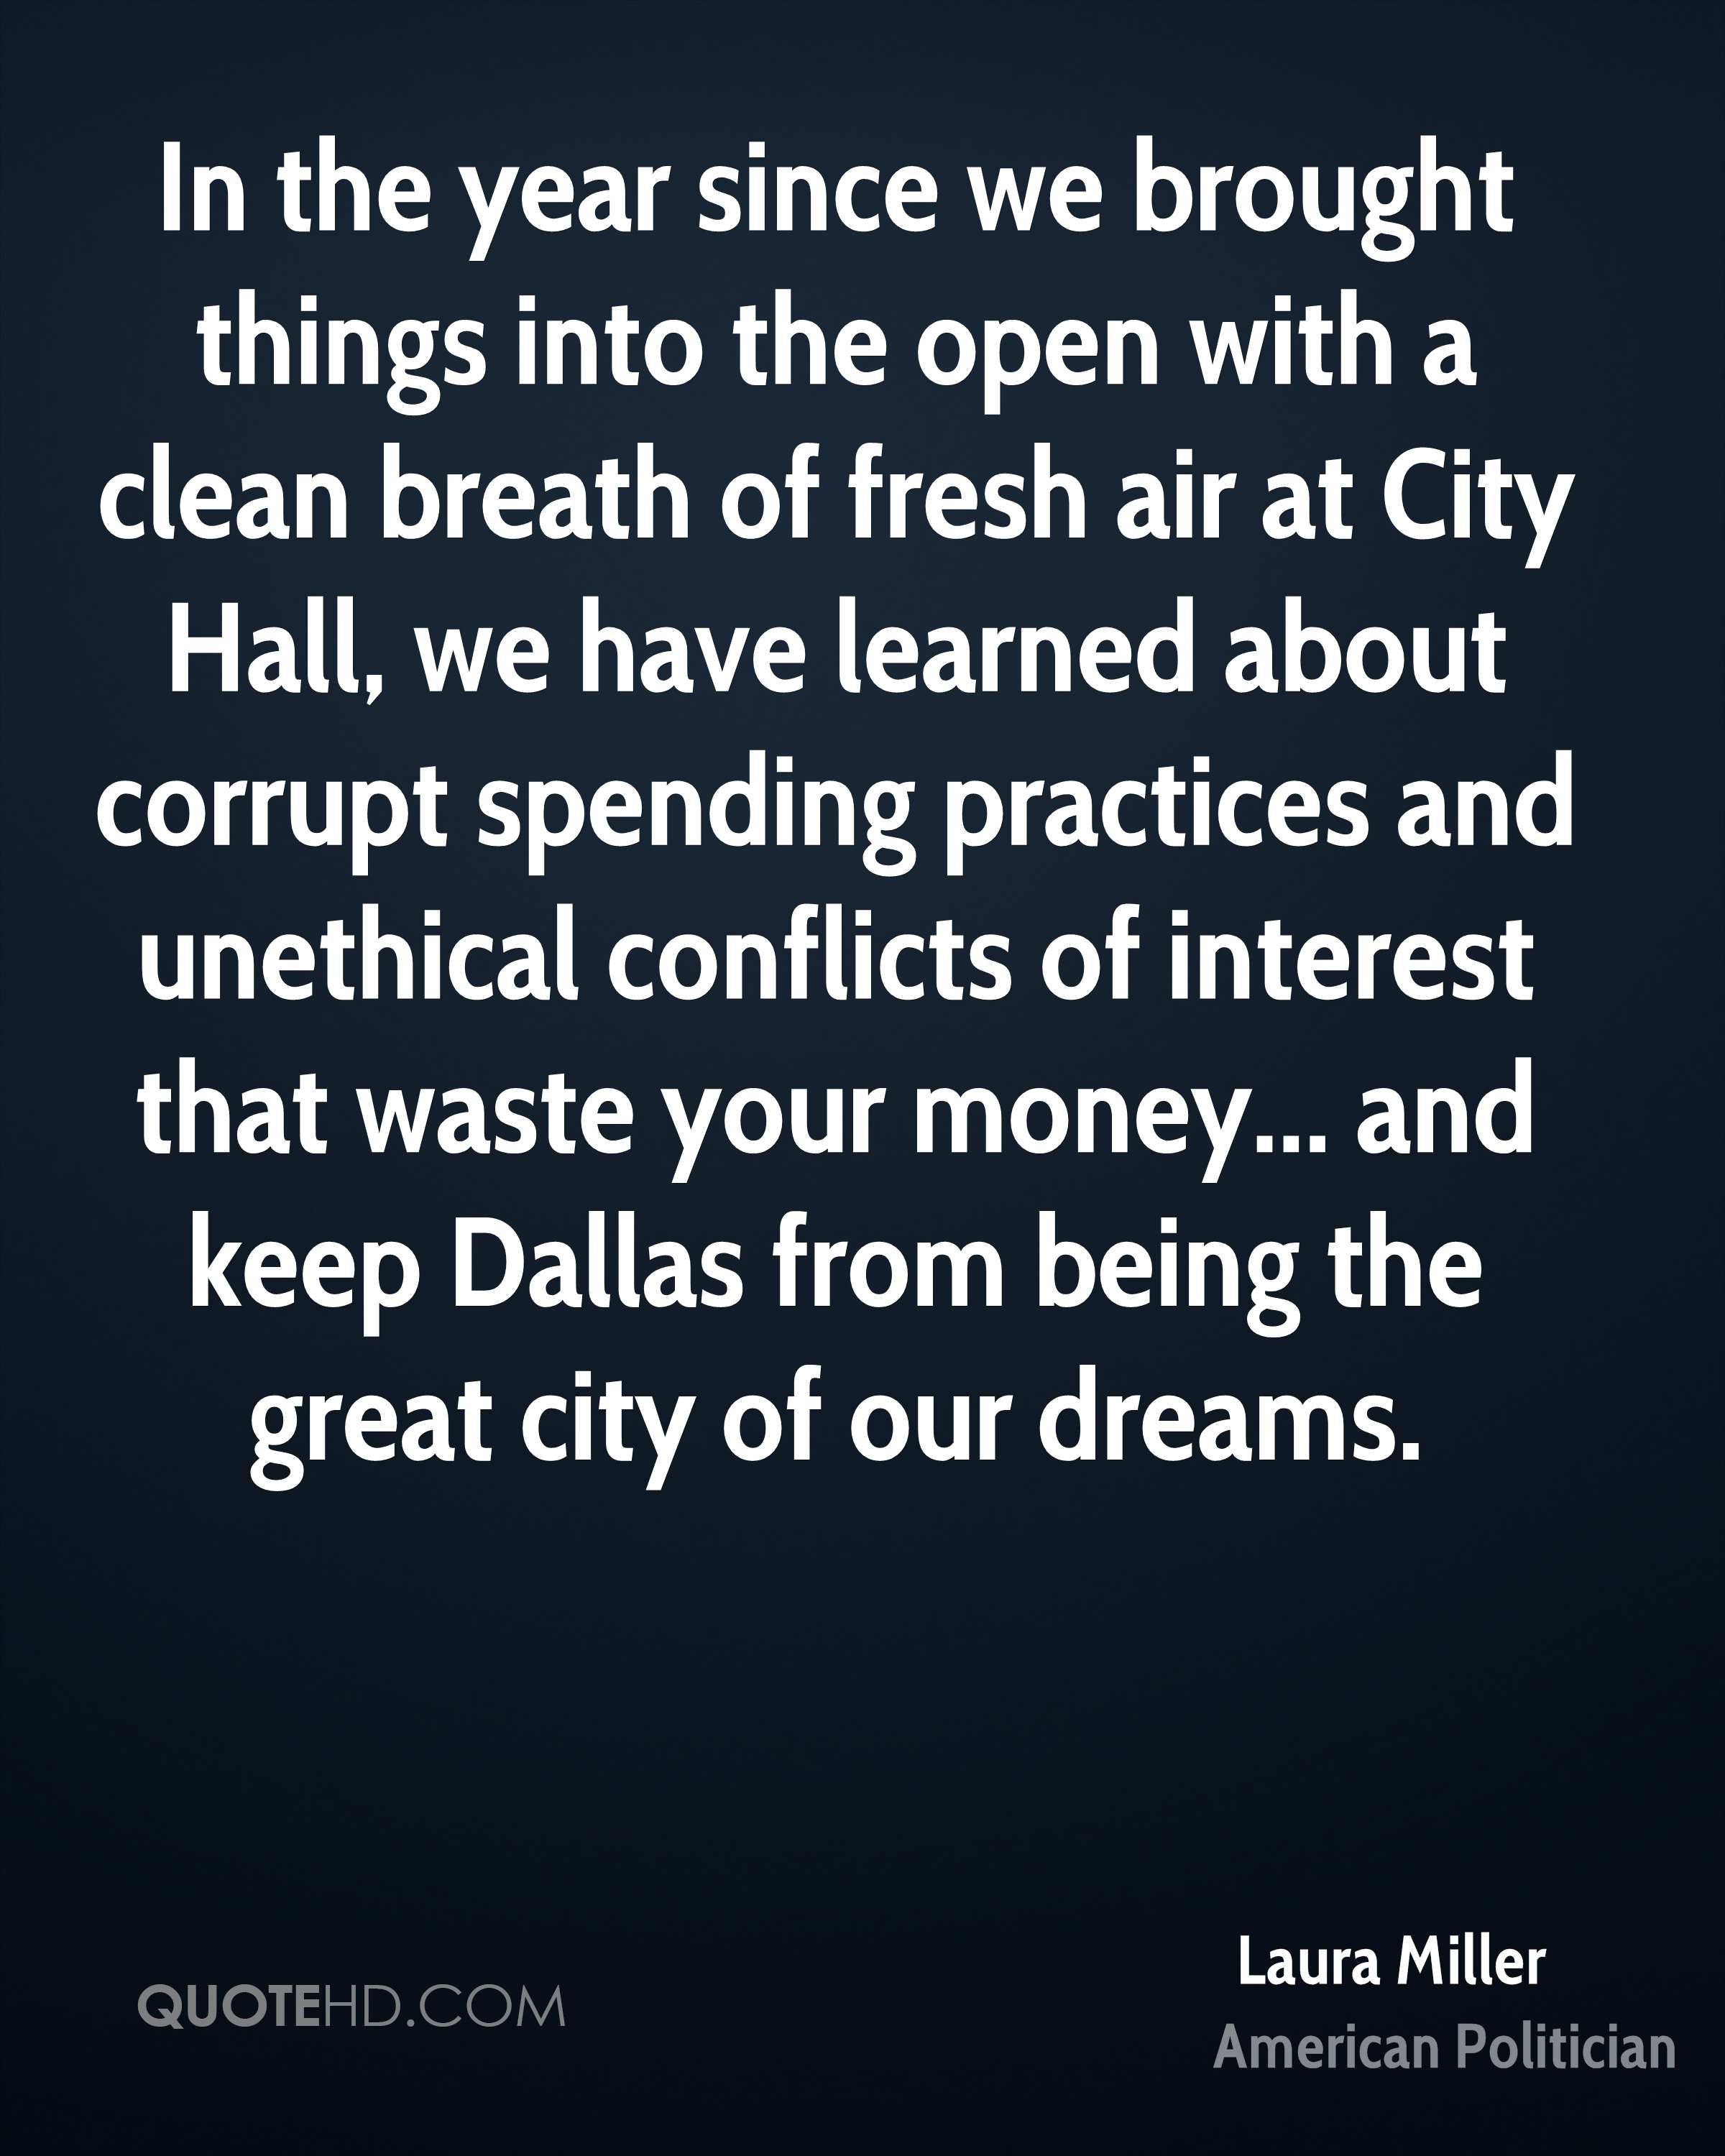 In the year since we brought things into the open with a clean breath of fresh air at City Hall, we have learned about corrupt spending practices and unethical conflicts of interest that waste your money... and keep Dallas from being the great city of our dreams.